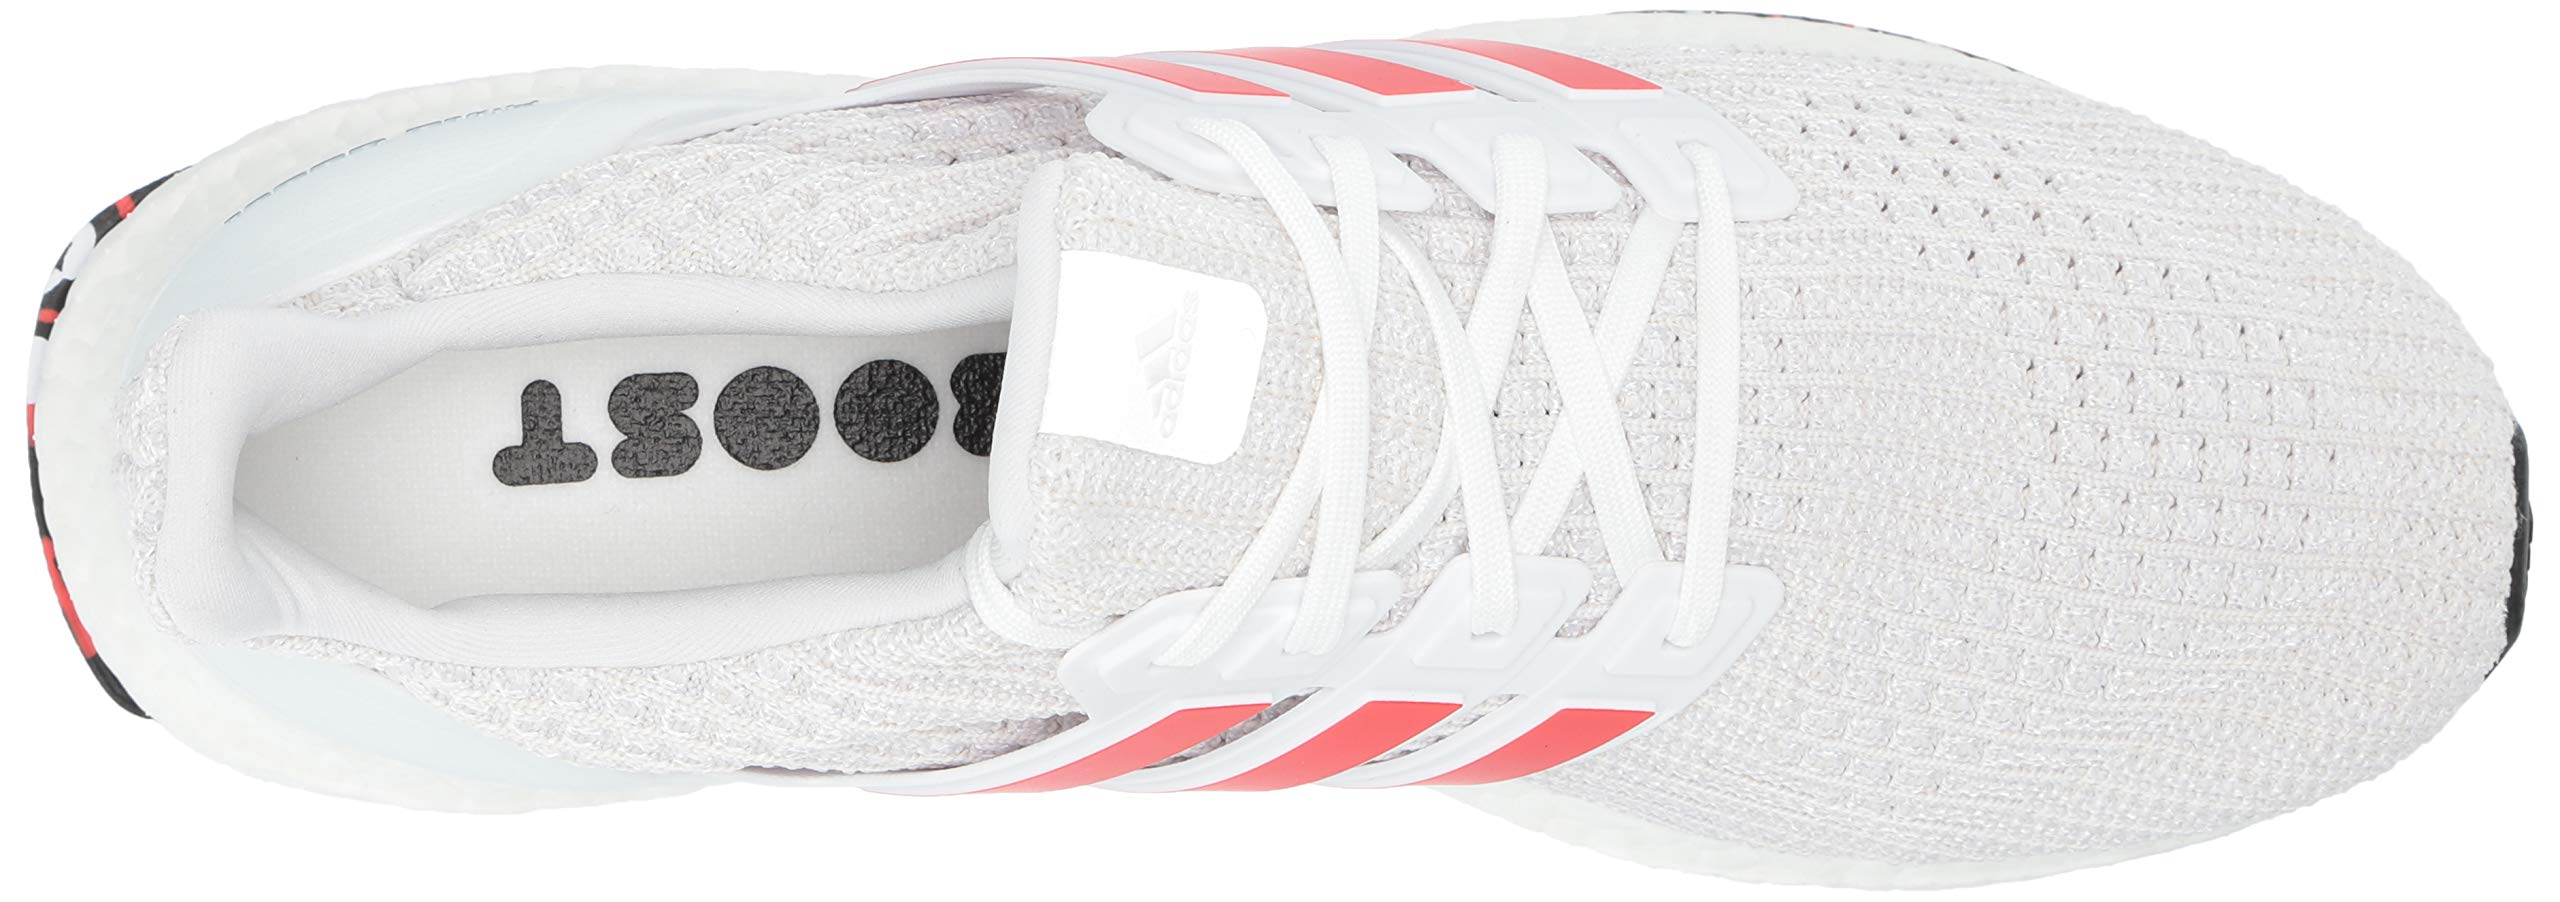 adidas Men's Ultraboost, Active red/Chalk White, 4 M US by adidas (Image #8)